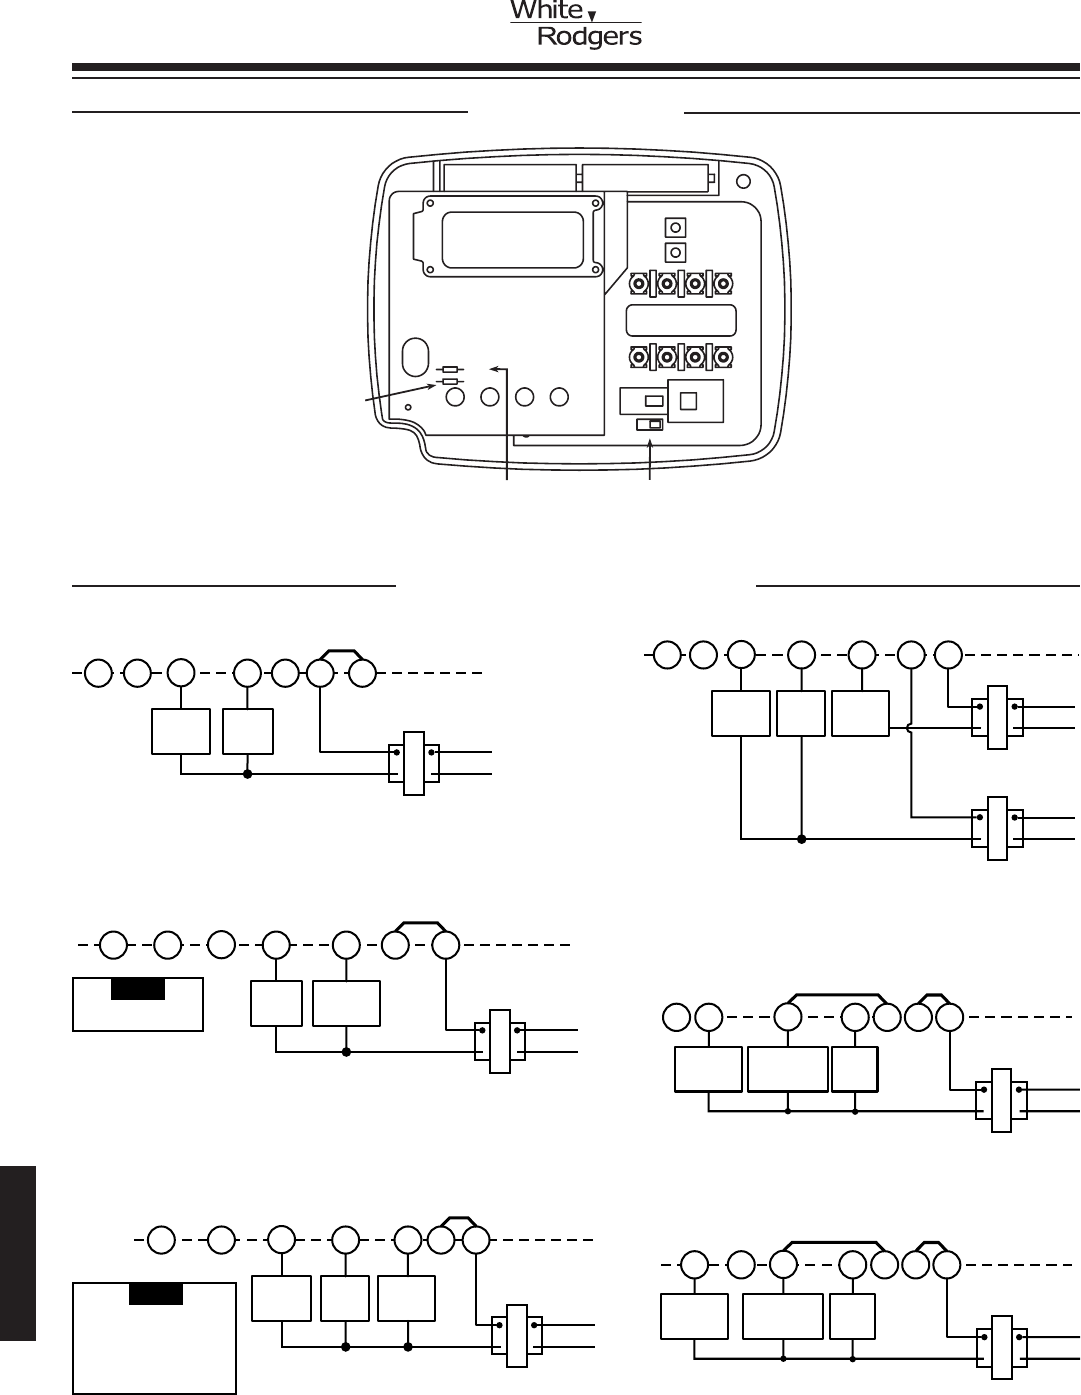 Wiring diagram for emerson thermostat free download wiring diagram emerson thermostat 1f78 151 user guide manualsonline free download wiring diagram swarovskicordoba Choice Image